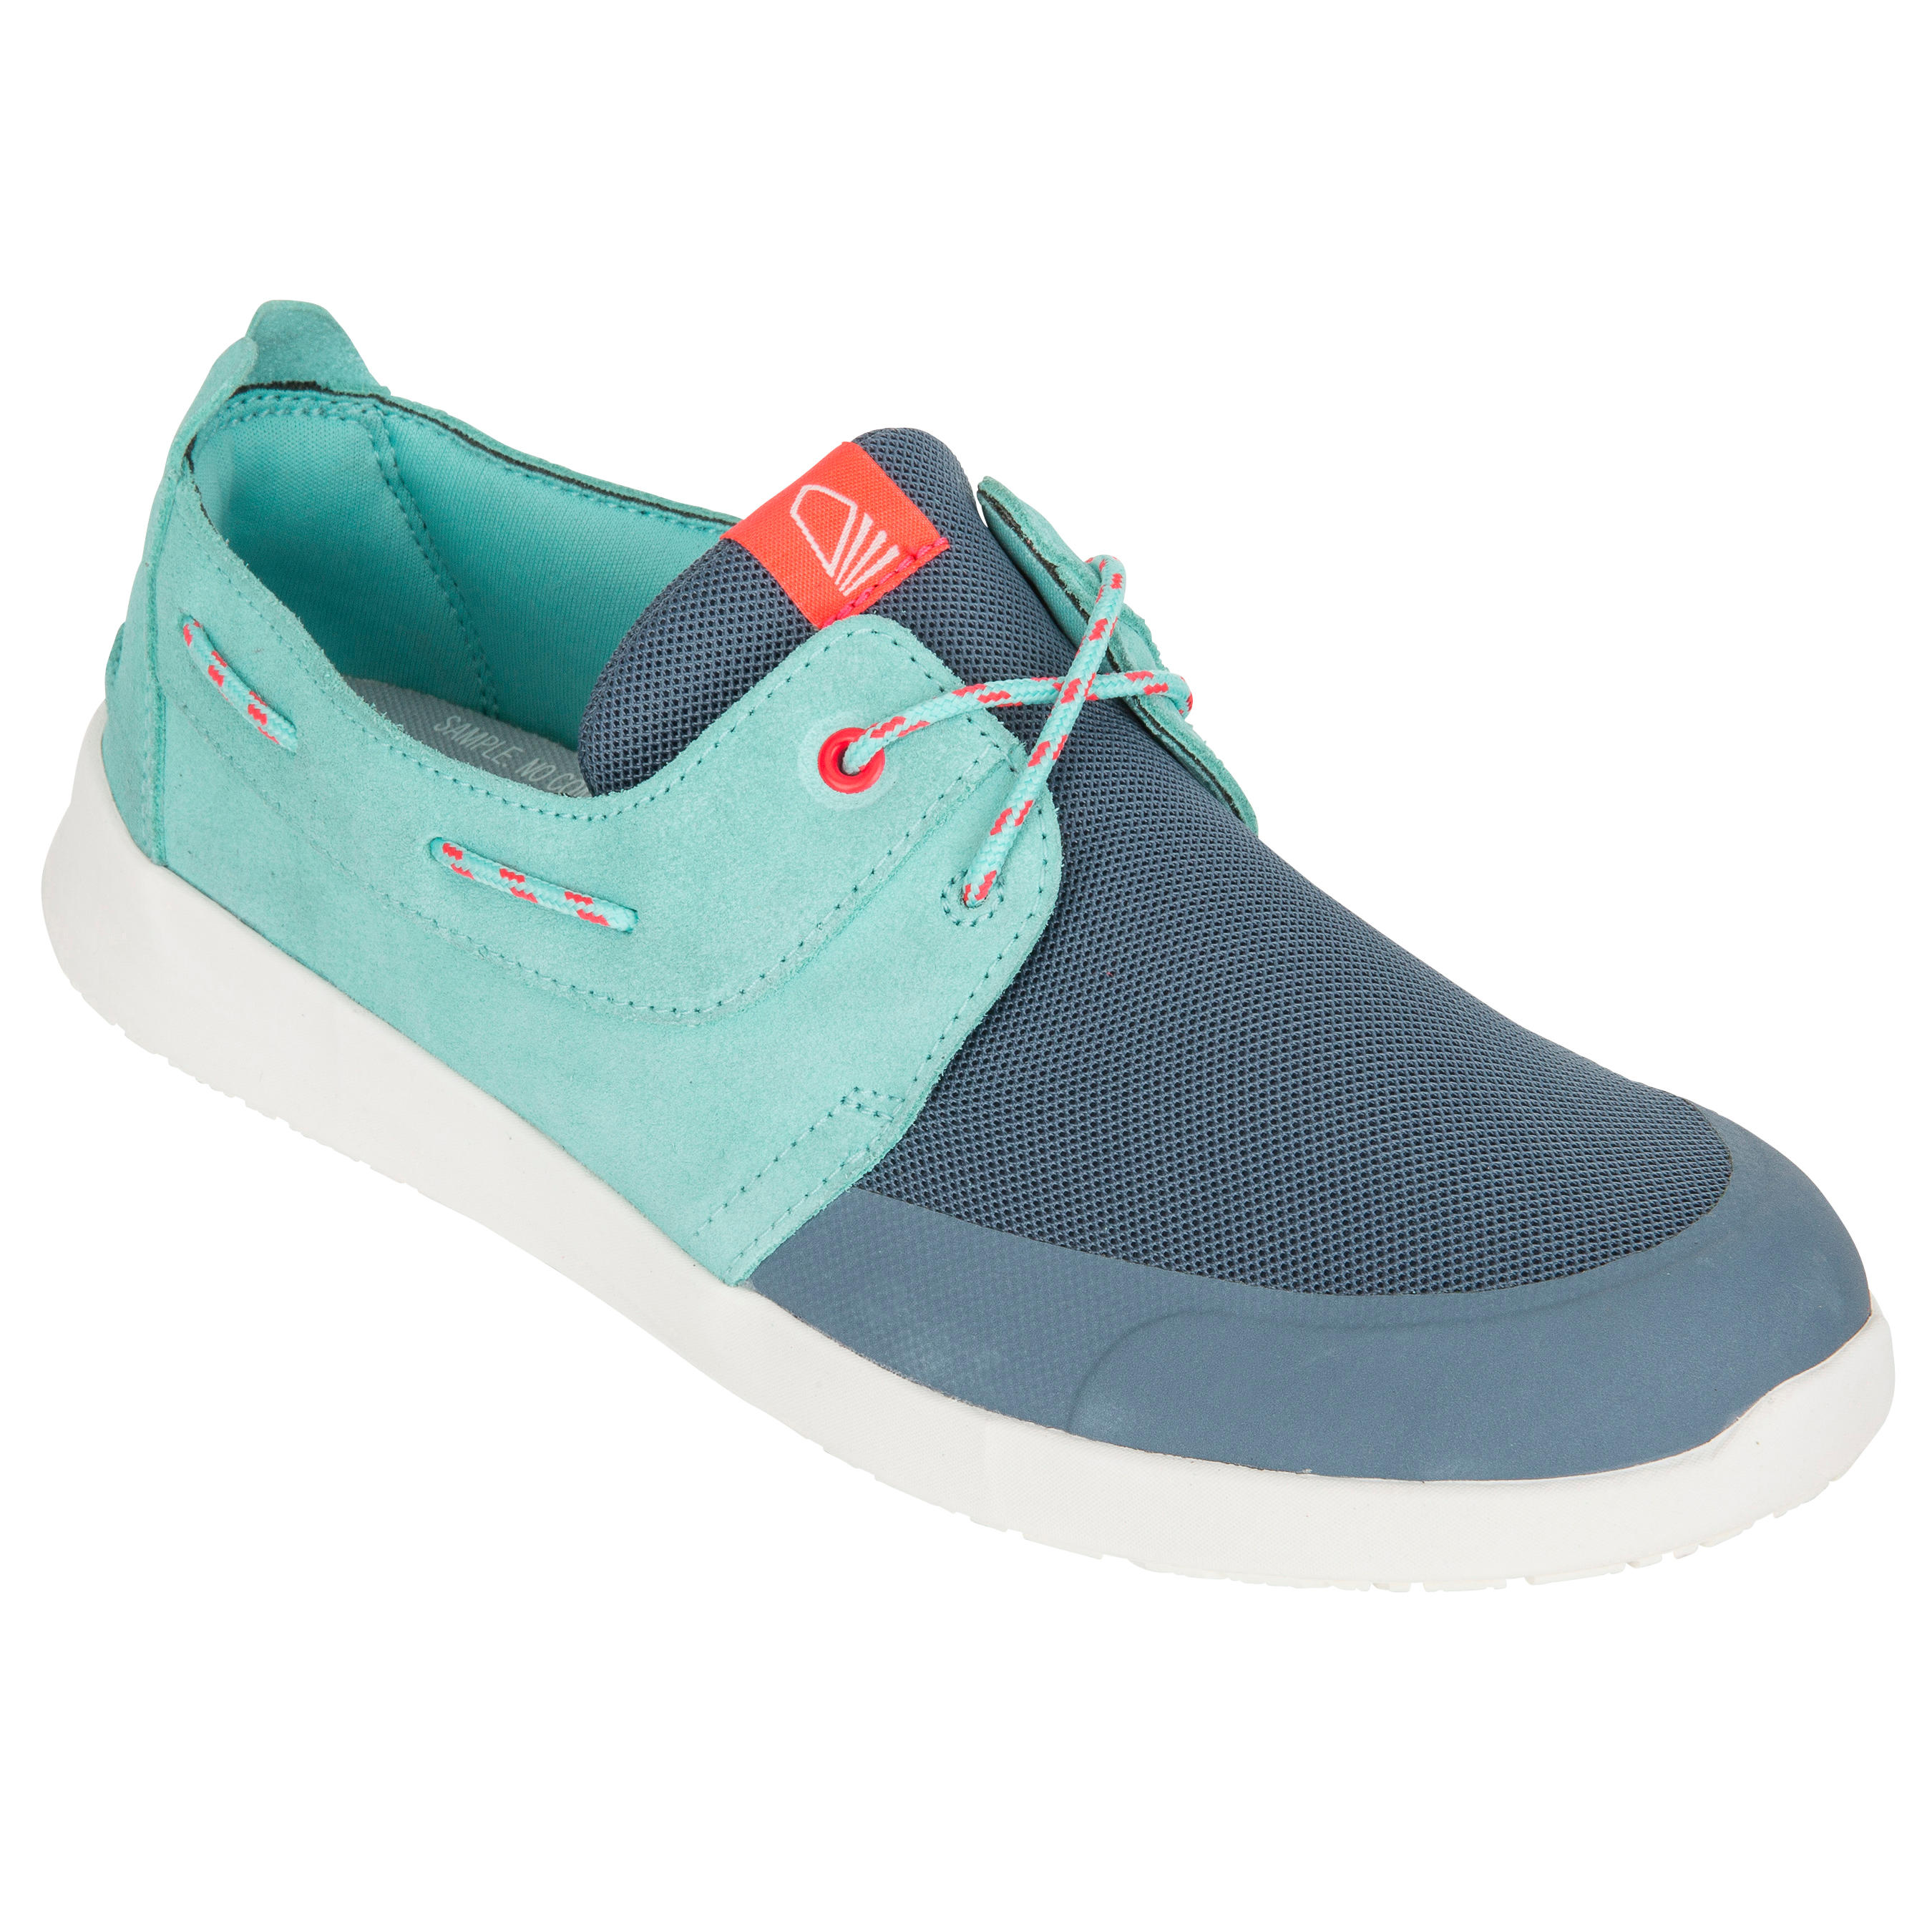 Cruise 100 Women's Leather Boat Shoes Turquoise Green / Dark Blue